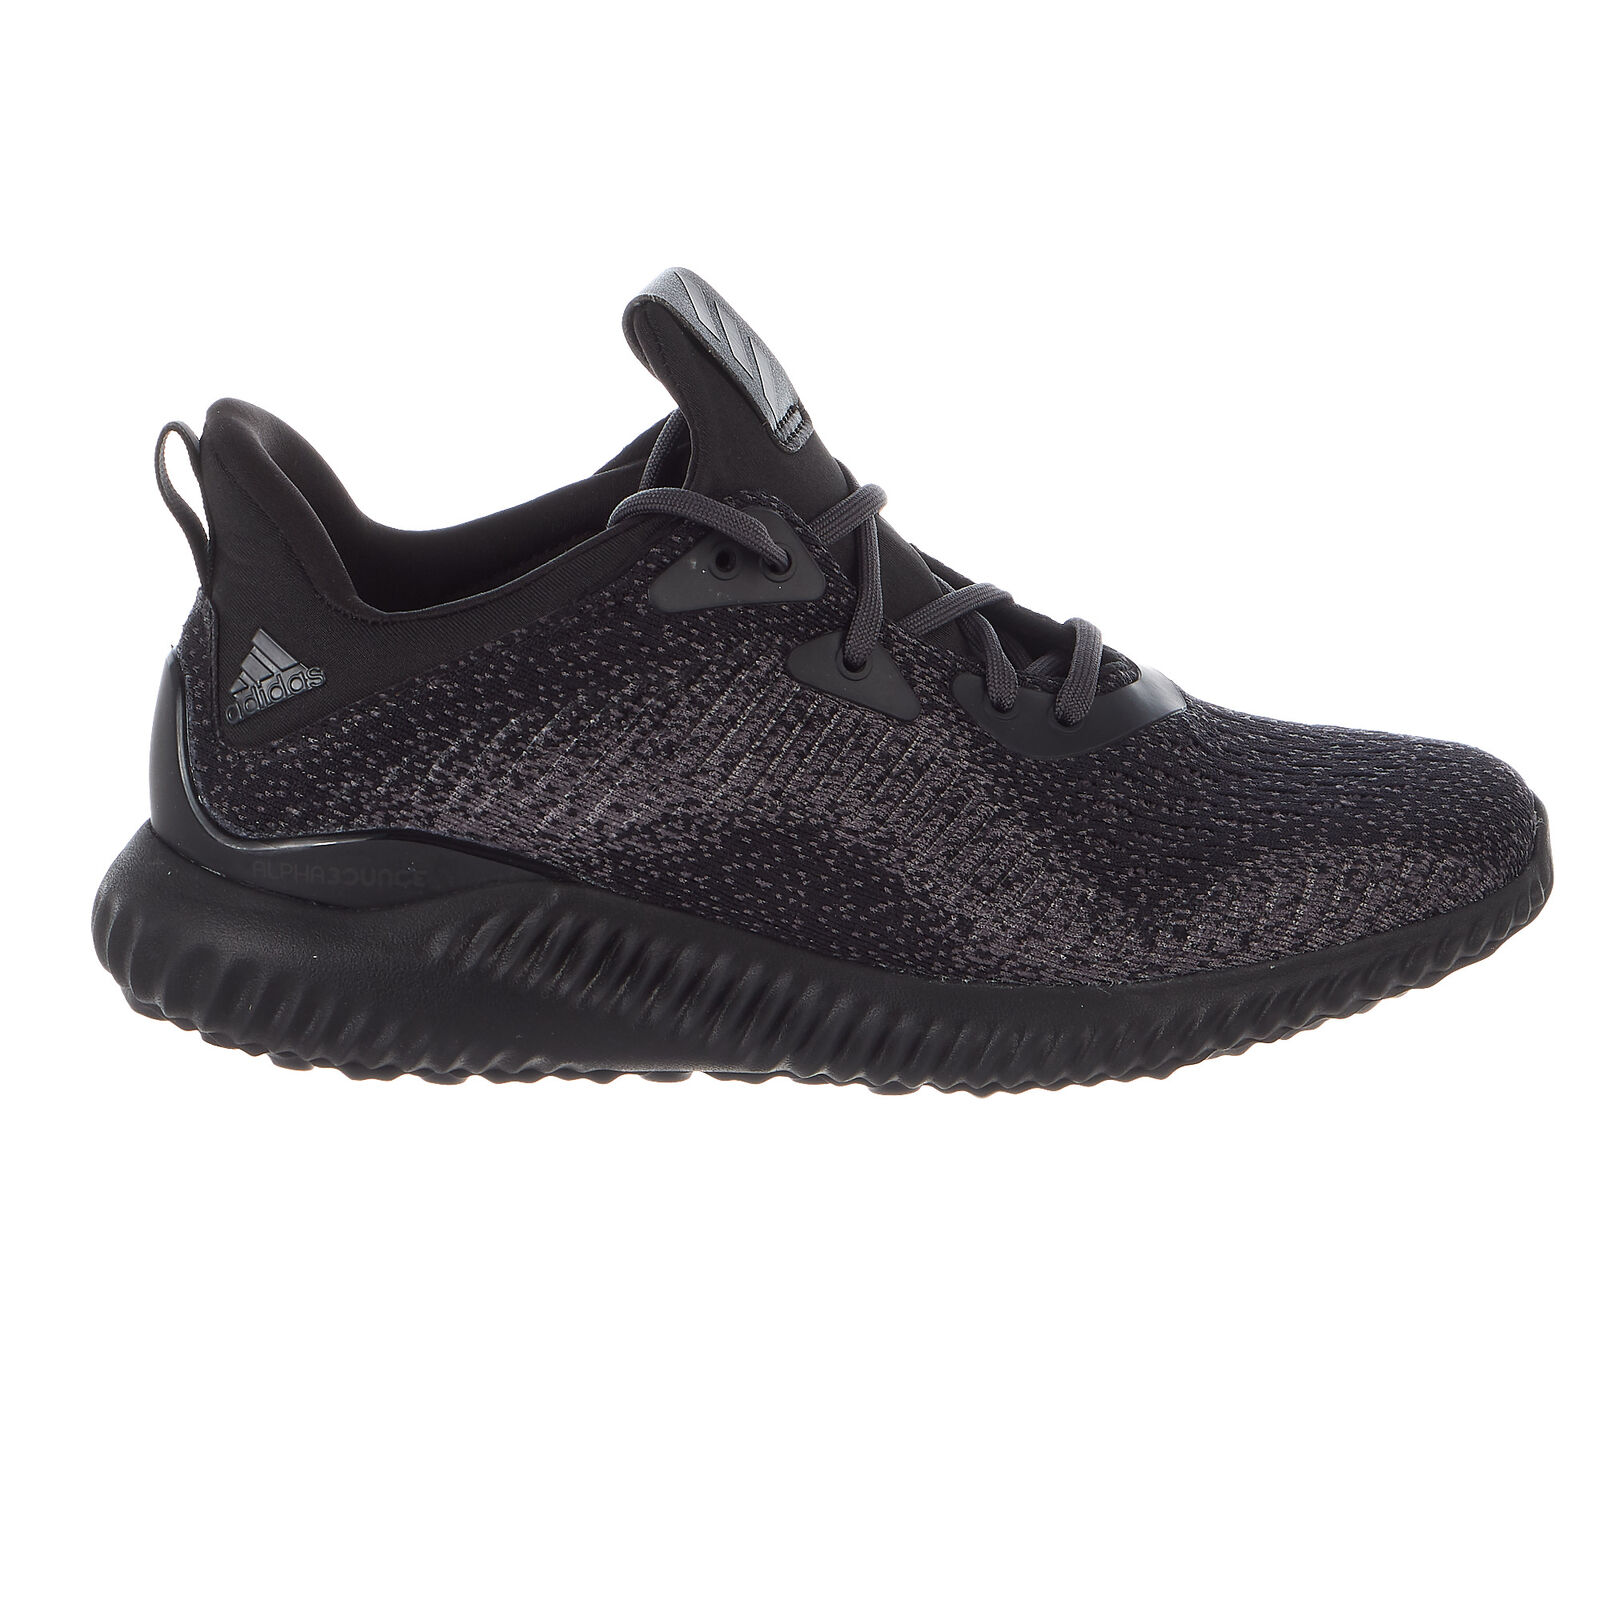 Adidas Alphabounce 1 Running shoes - Womens